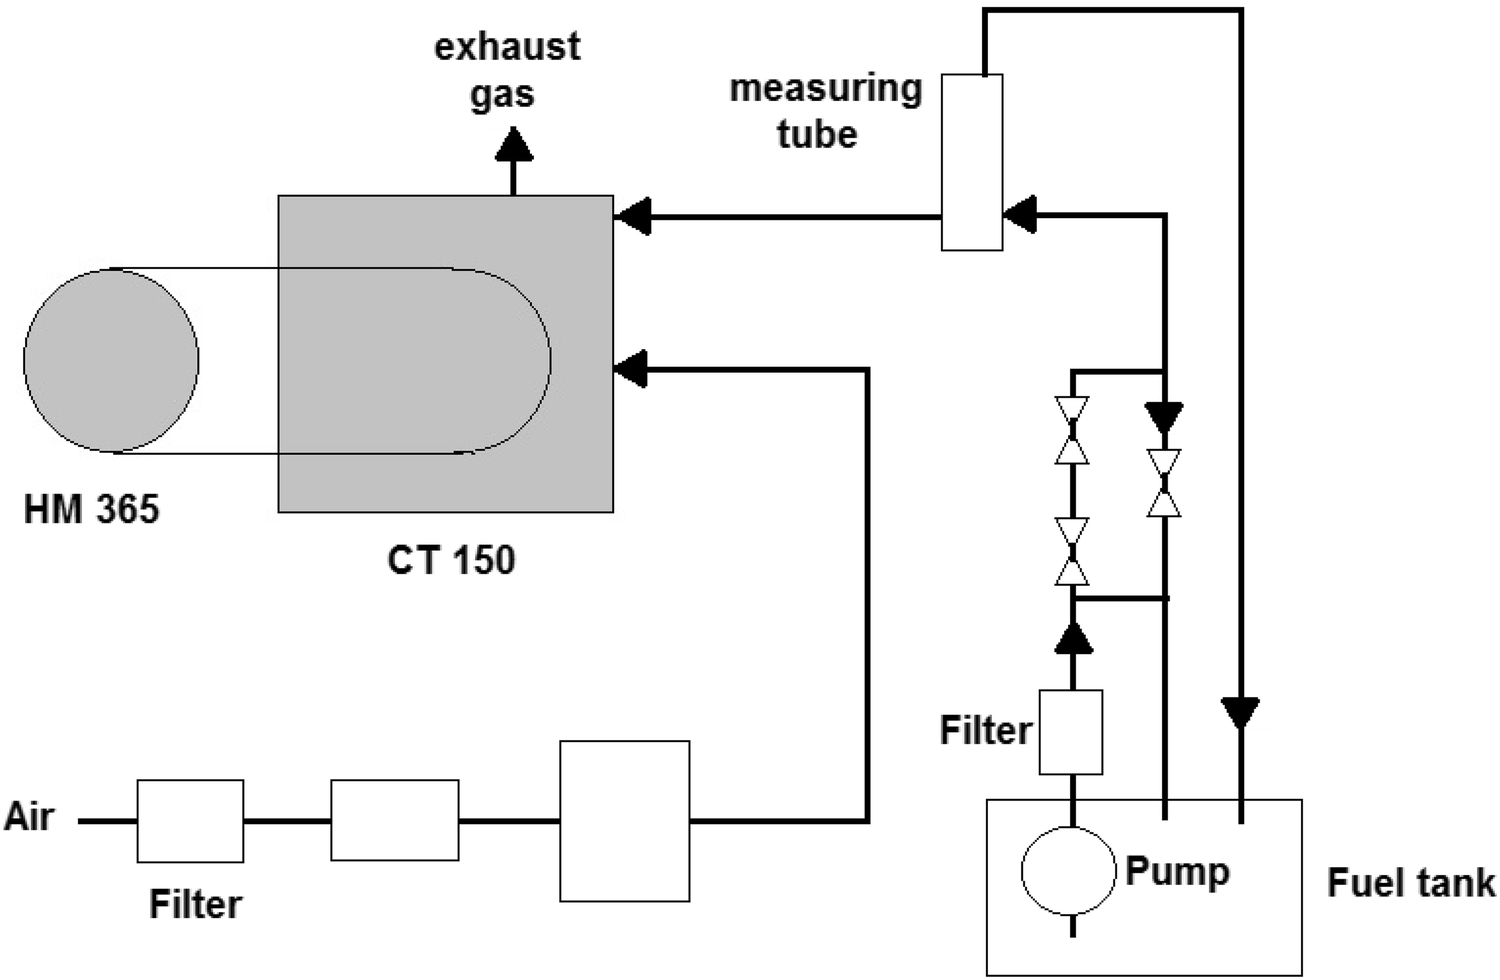 Performance Of A Gasoline Engine Powered By Mixture Ethanol And Diagram Open Image In New Window